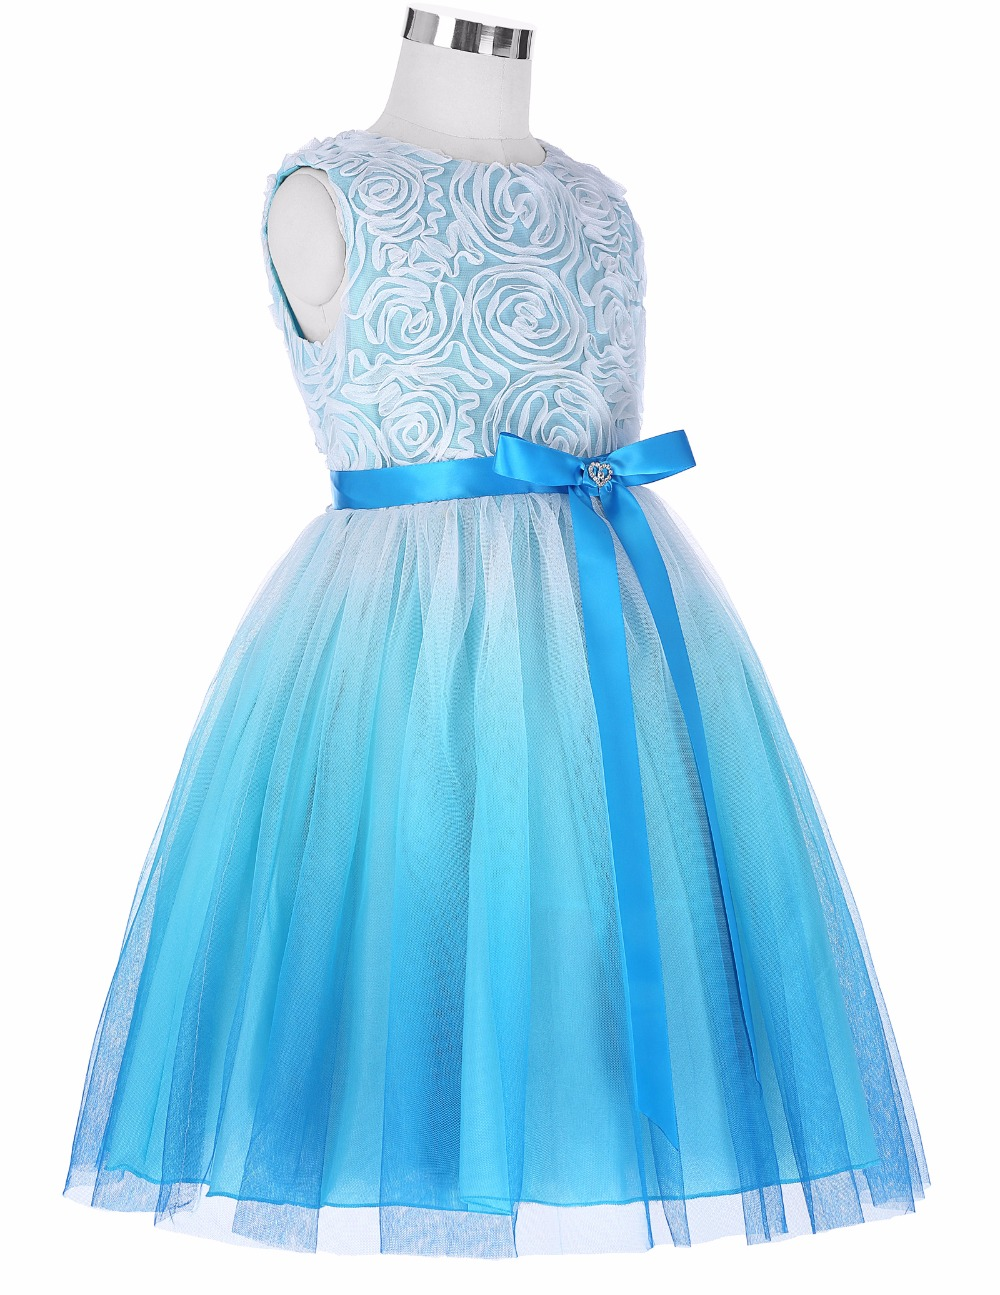 Grace Karin 2017 Flower Girl Dresses Luxury Tulle Flower Party Dresses For Wedding Party First Communion Dresses With Bow Ribbon 14